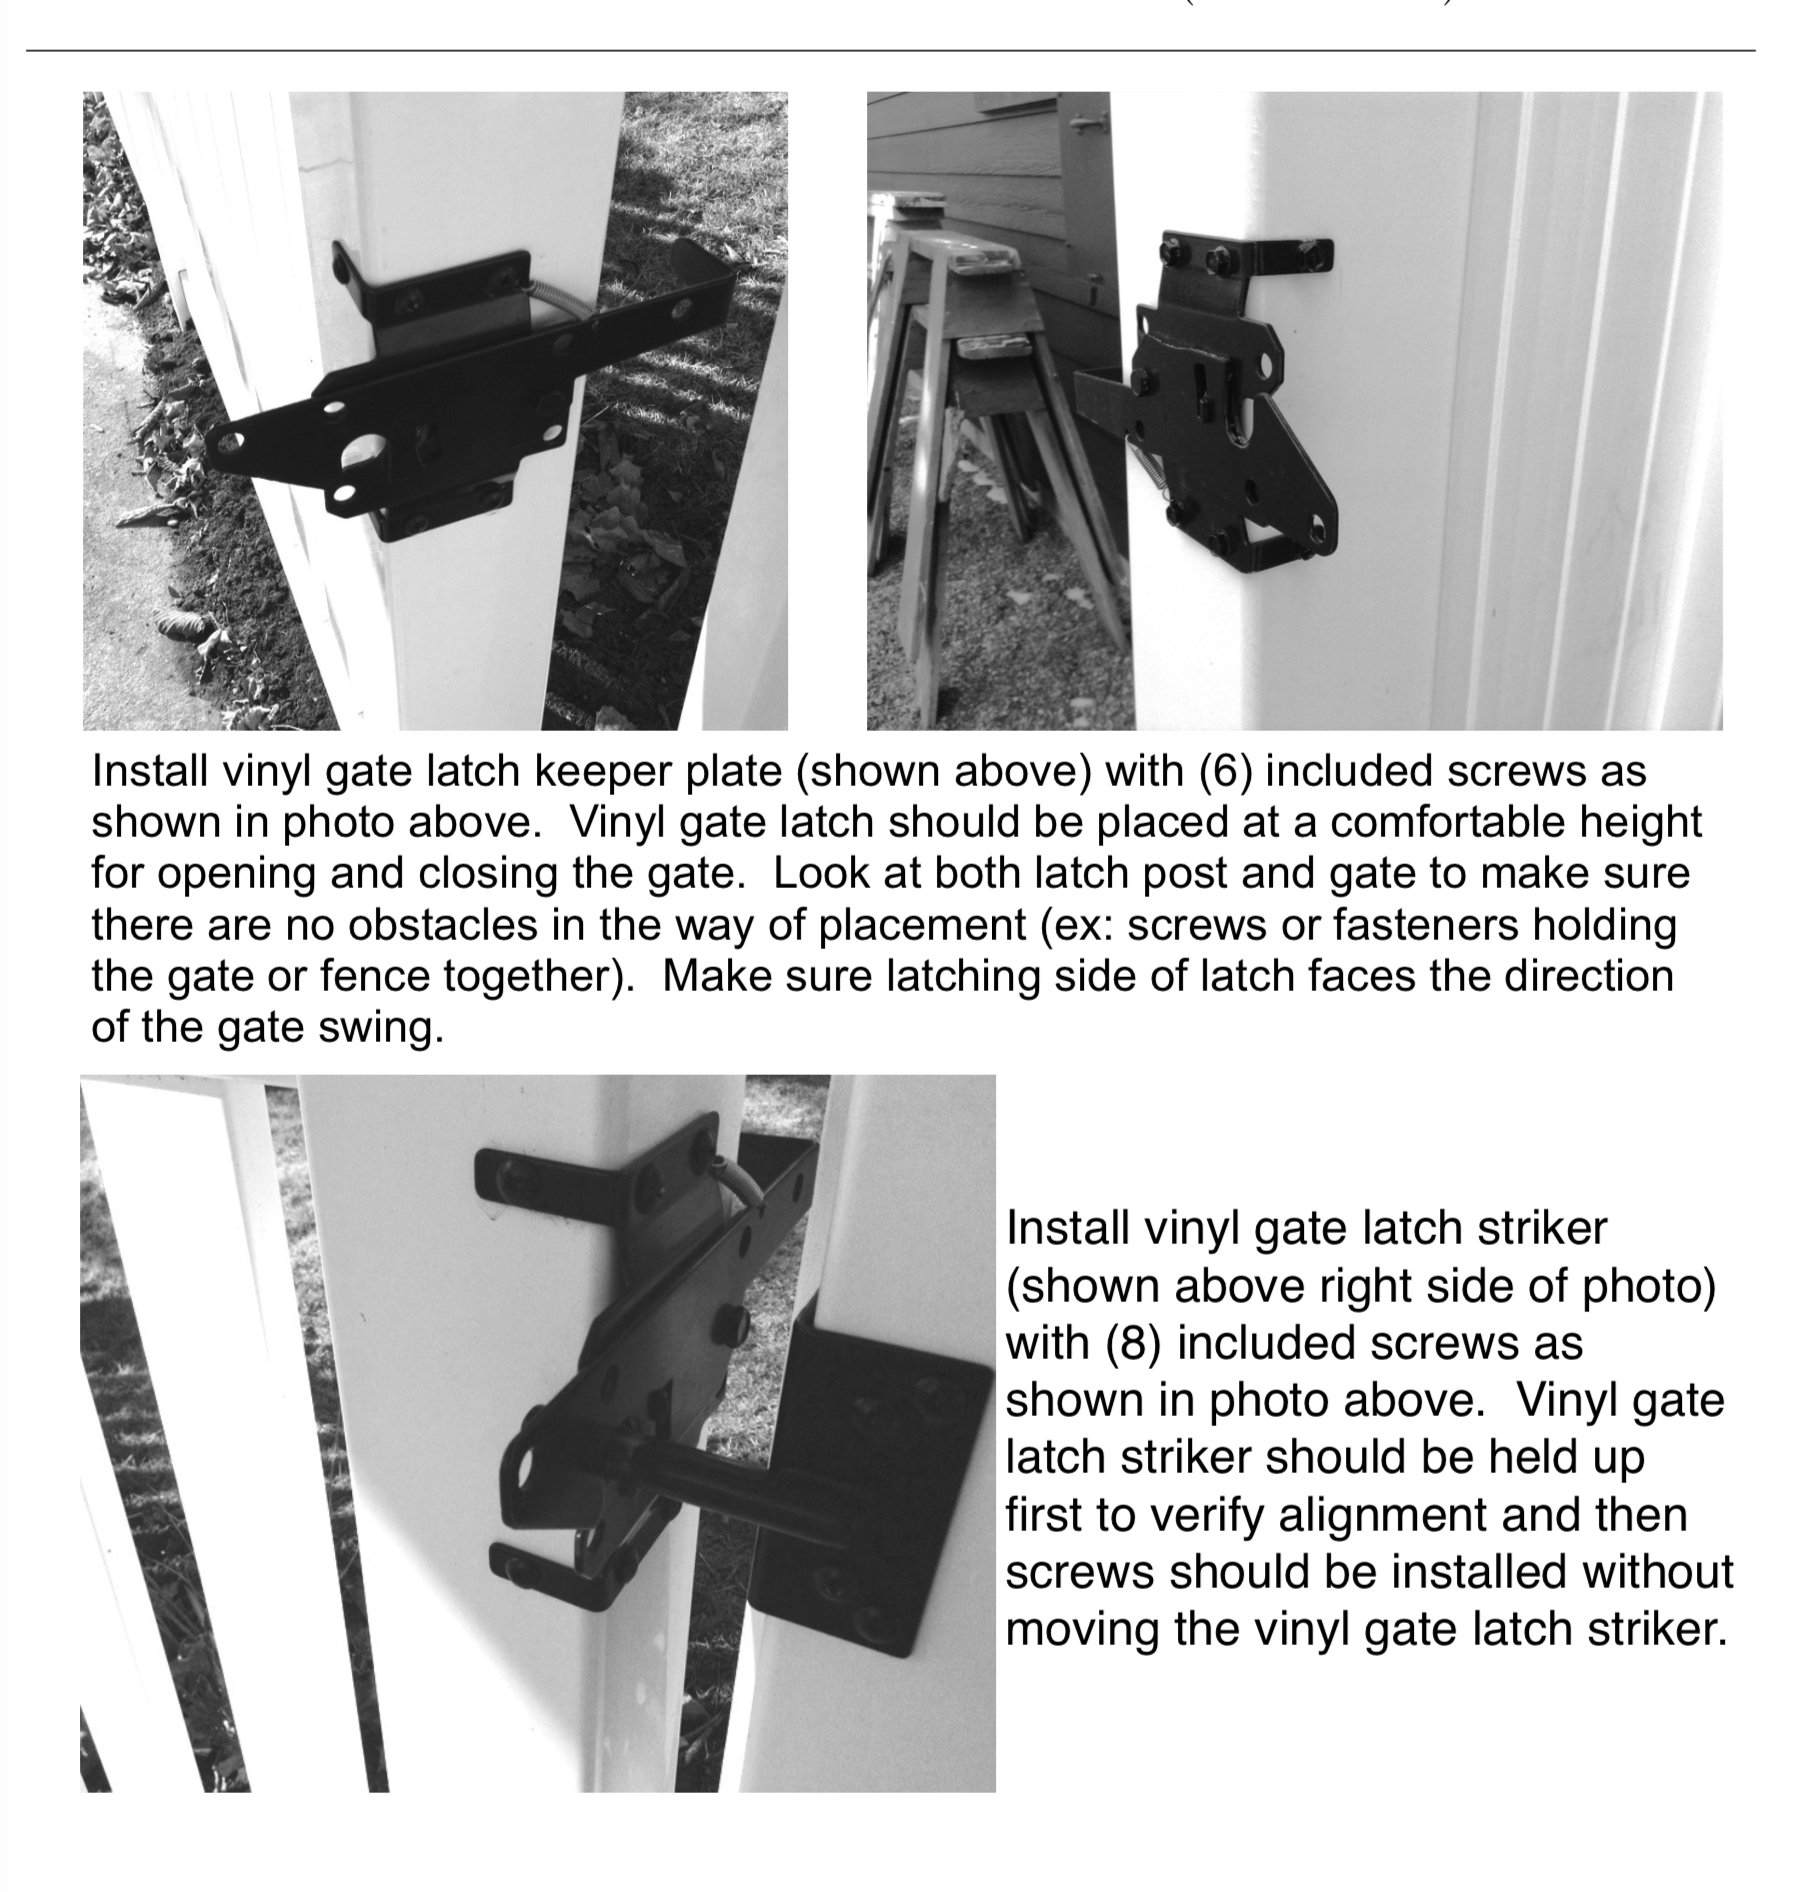 Stainless Steel Vinyl Gate Latch BLACK (for Vinyl, Wood, PVC etc  Fencing)  Fence Gate Latch w/Mounting Hardware